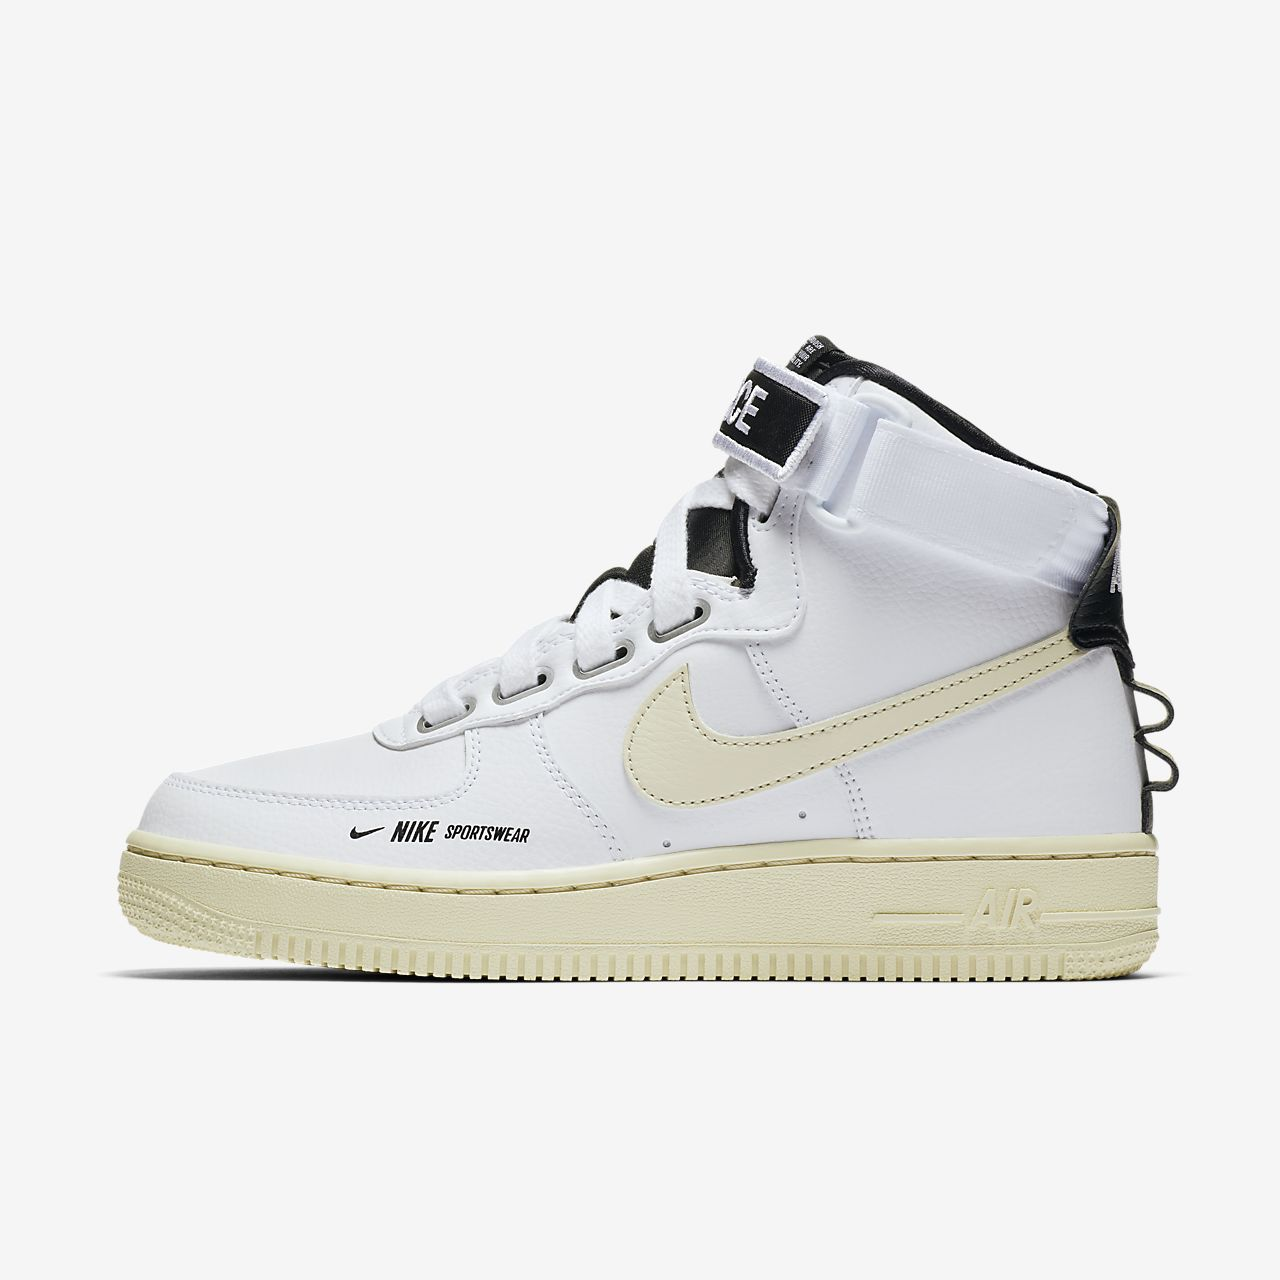 Nike Air Force 1 High Utility Women's Shoe